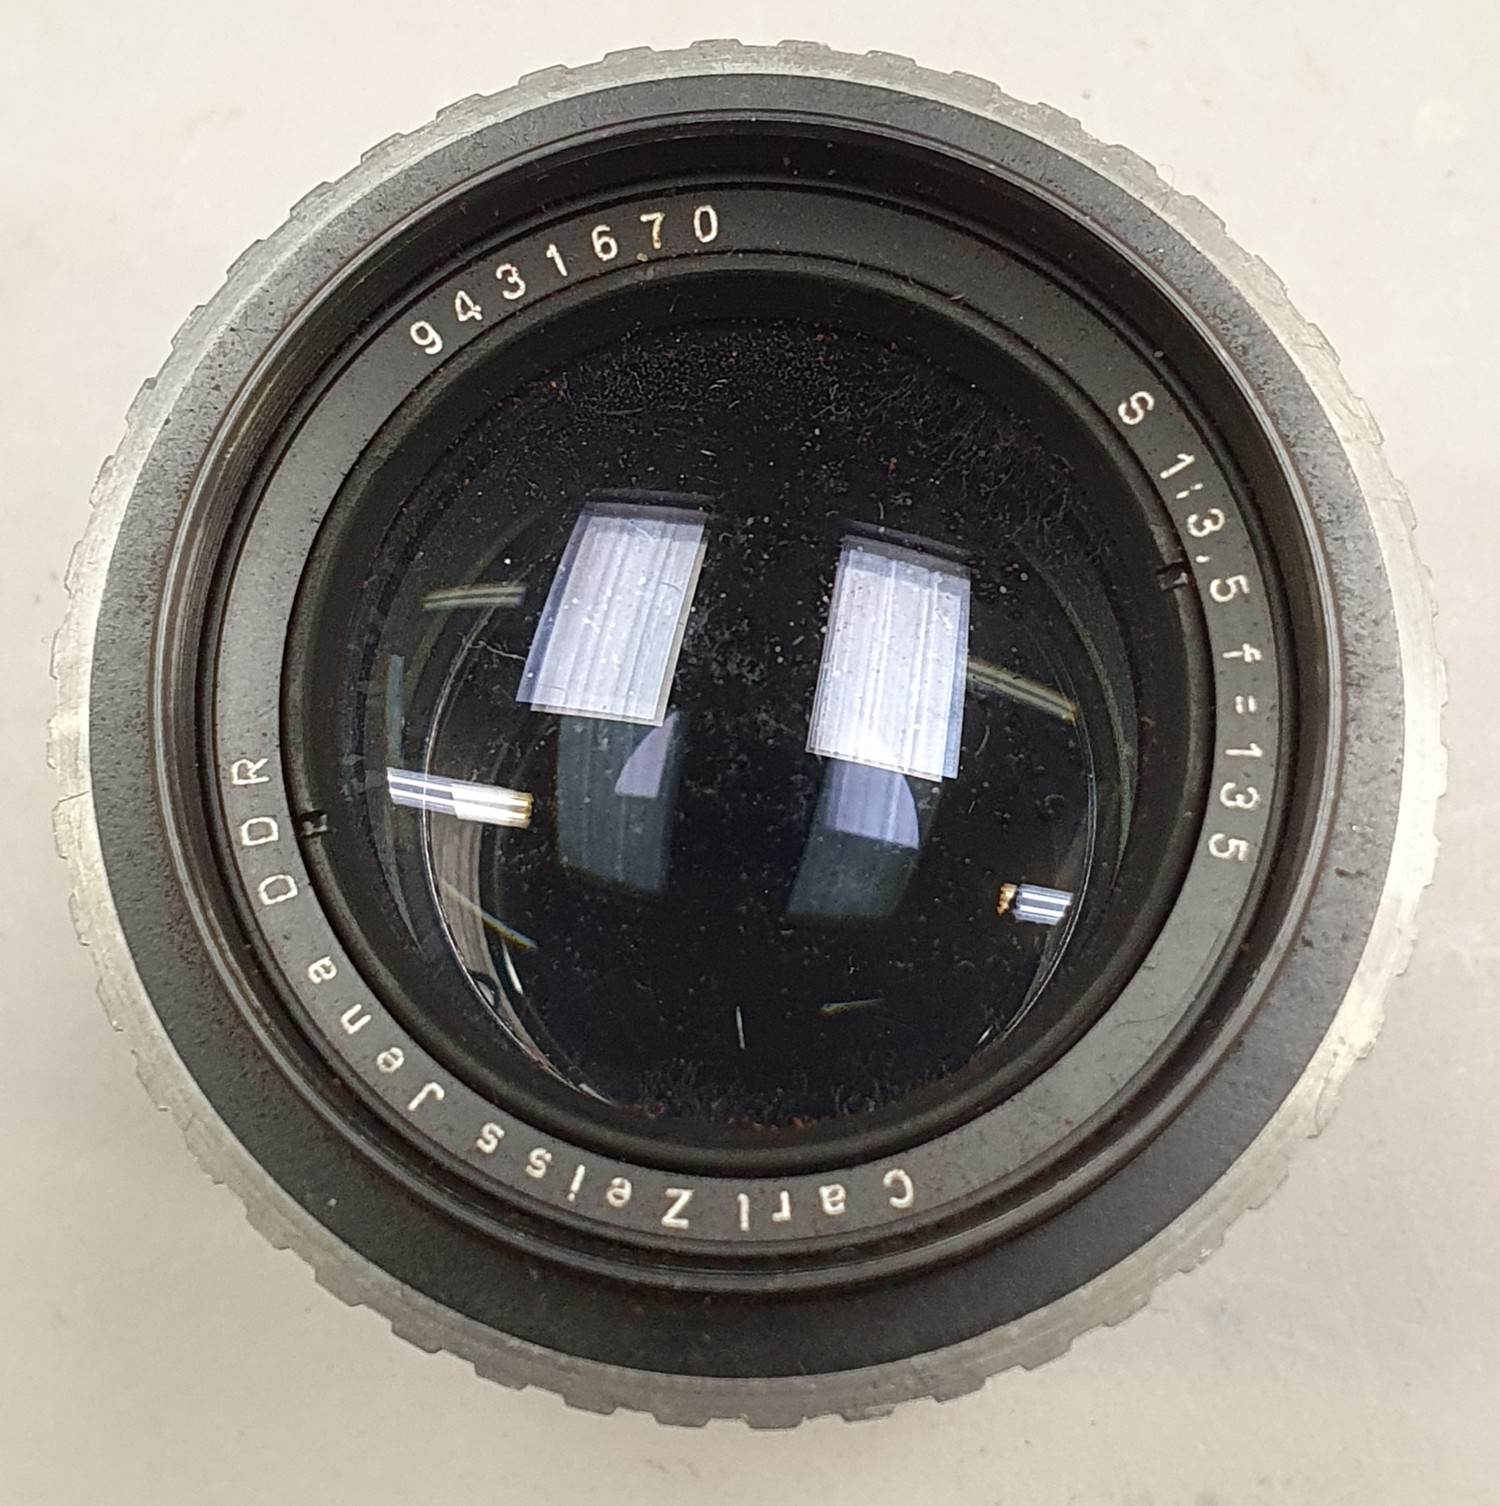 A collection of camera lenses to include Optomax, Nikon etc. - Image 3 of 9